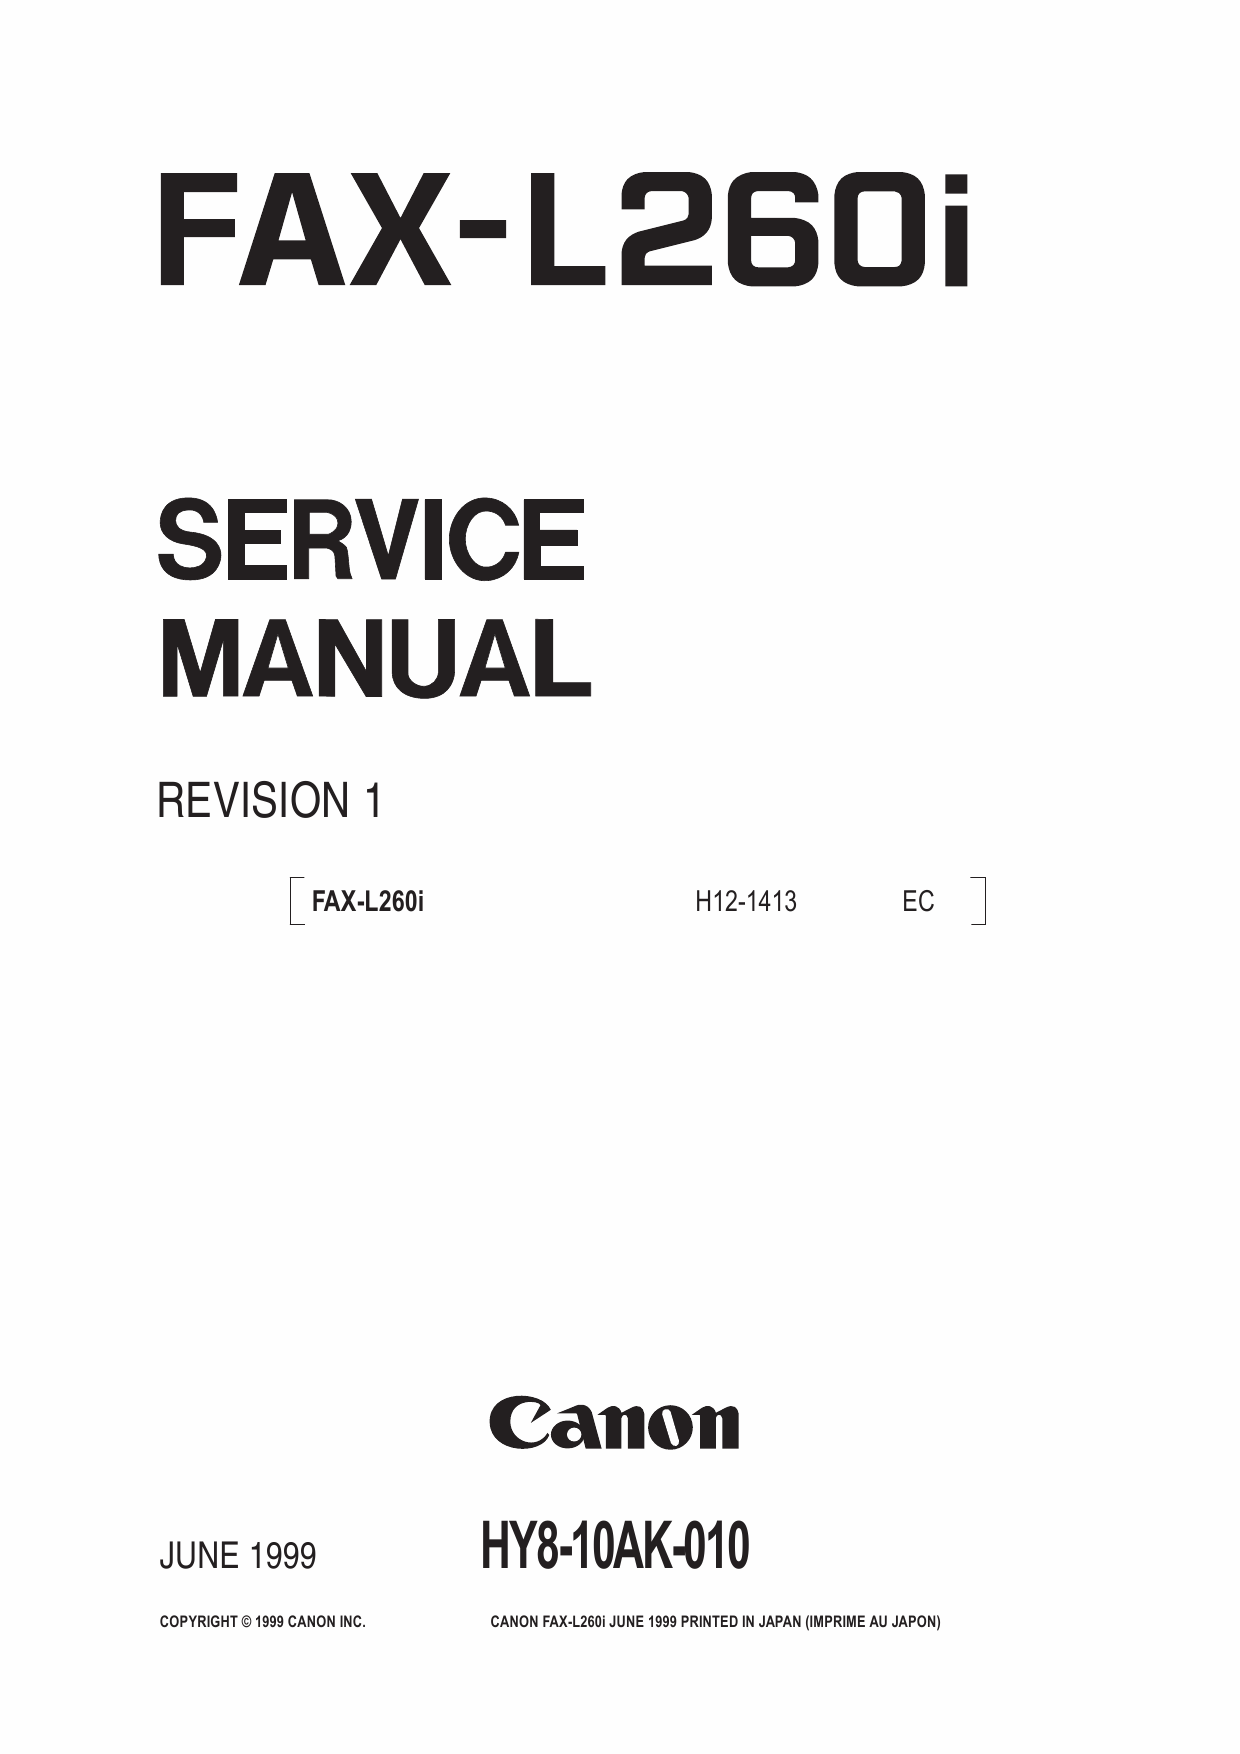 Canon FAX L260i Parts and Service Manual-1